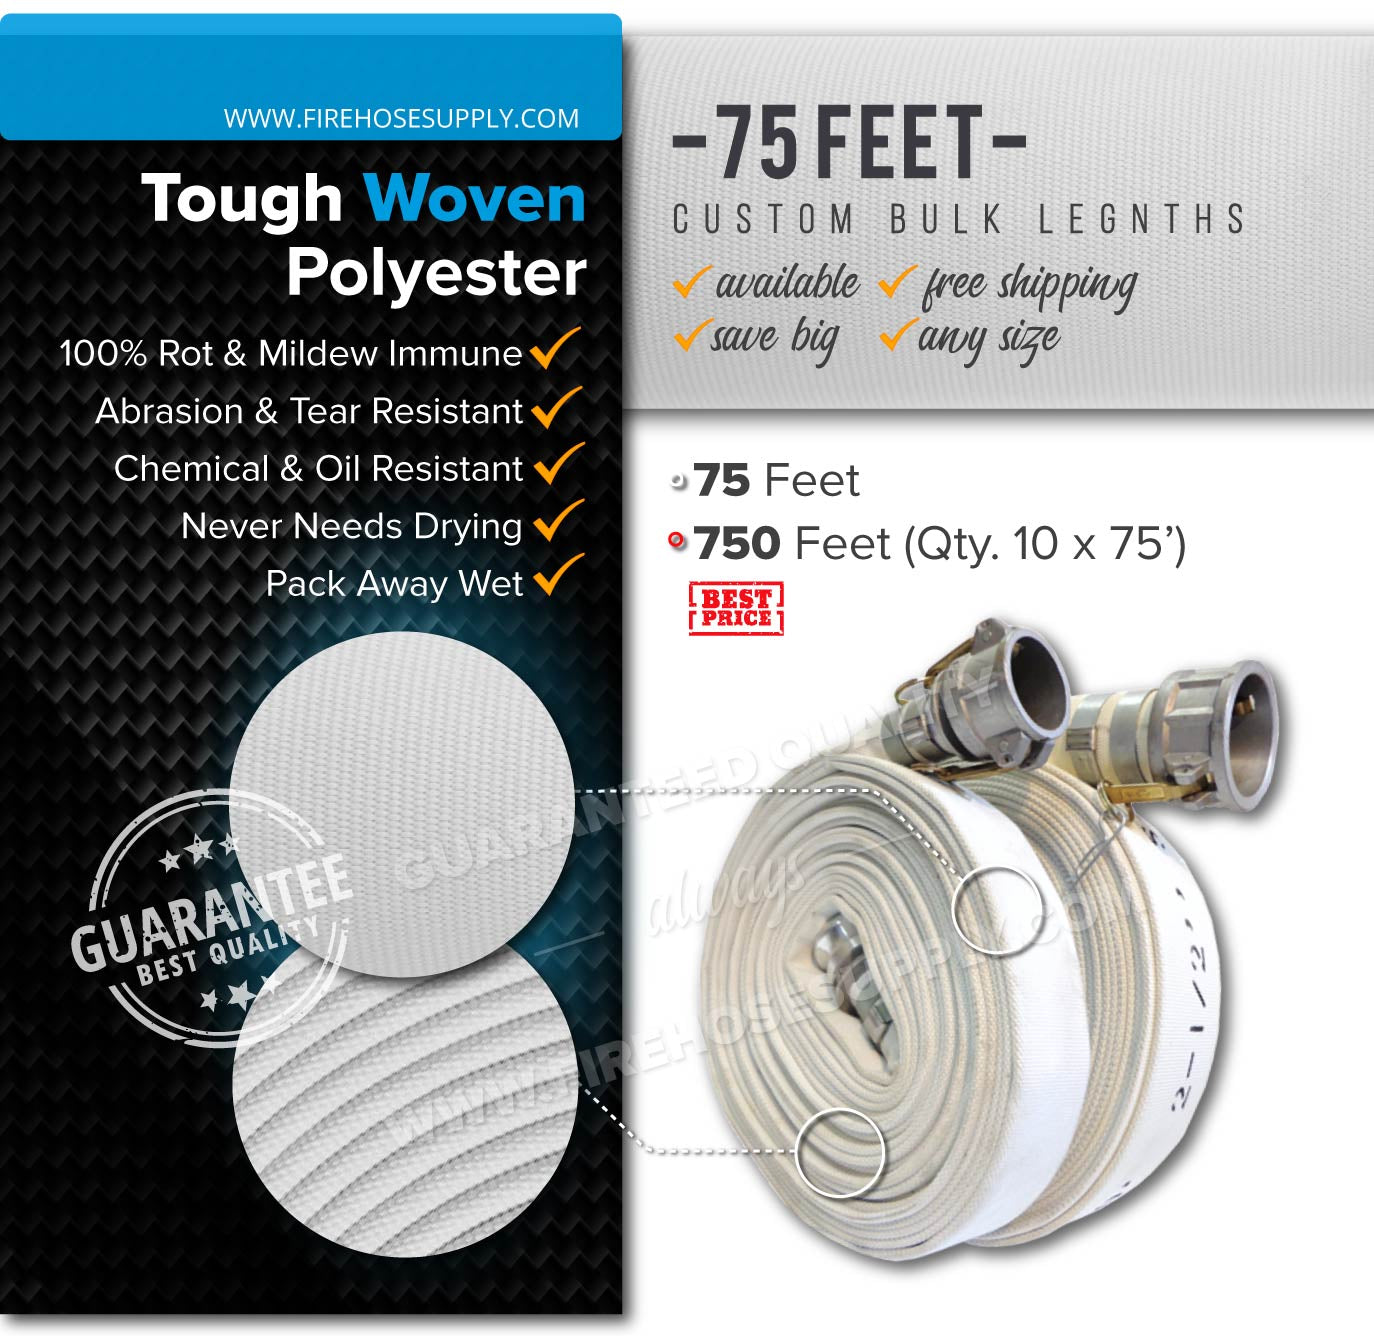 1 inch 75 feet camlock quick connect hose polyester bulk wholesale 750 feet